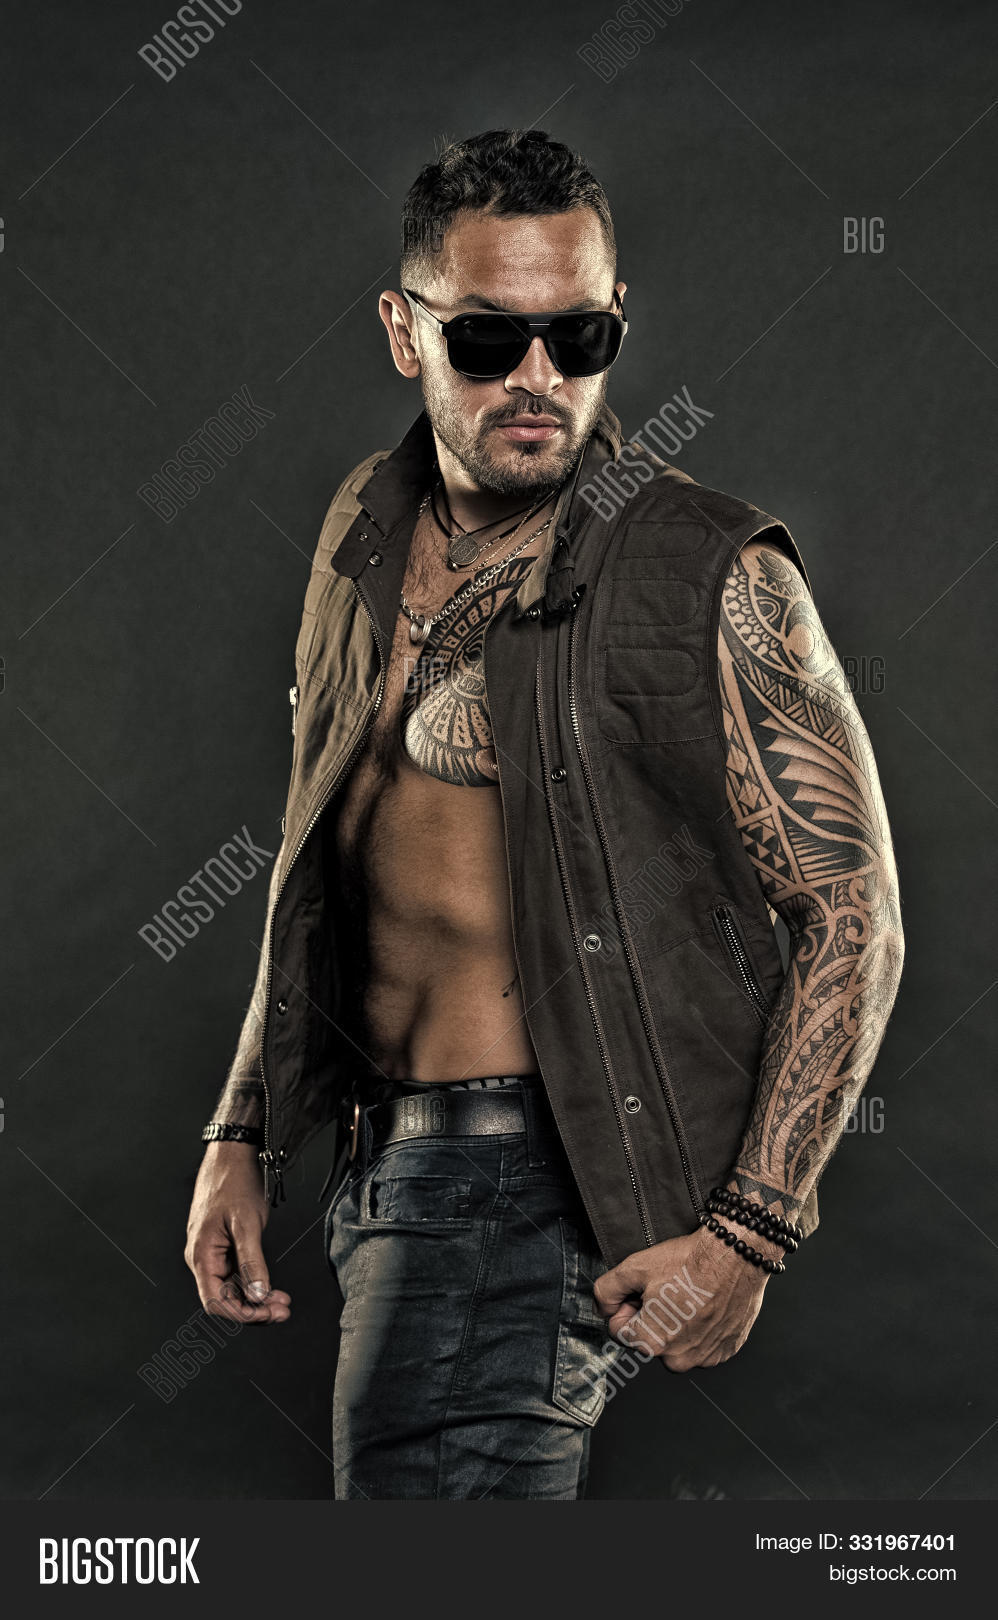 ab,accessory,arms,athlete,athletic,attraction,barber,beard,bearded,belly,brutal,casual,charisma,chest,confidence,desire,face,fashion,fashionable,filter,fit,fitness,hairstyle,hipster,hispanic,macho,man,model,muscle,muscular,mustache,power,retro,sexi,sexuality,sexy,strong,style,stylish,sunglasses,tattoo,tattooed,trend,trendy,unshaven,vintage